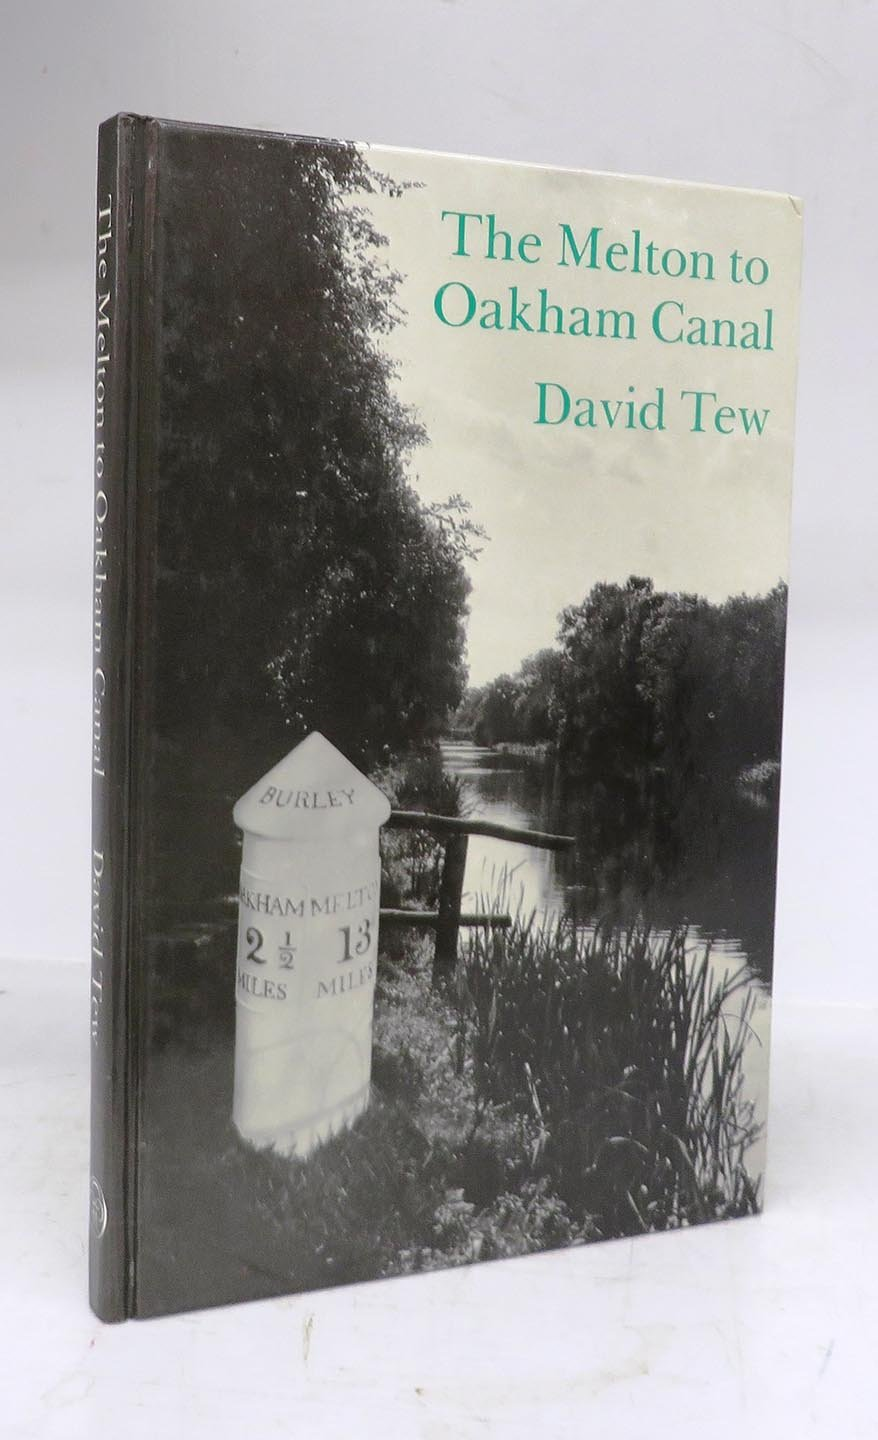 The Melton to Oakham Canal